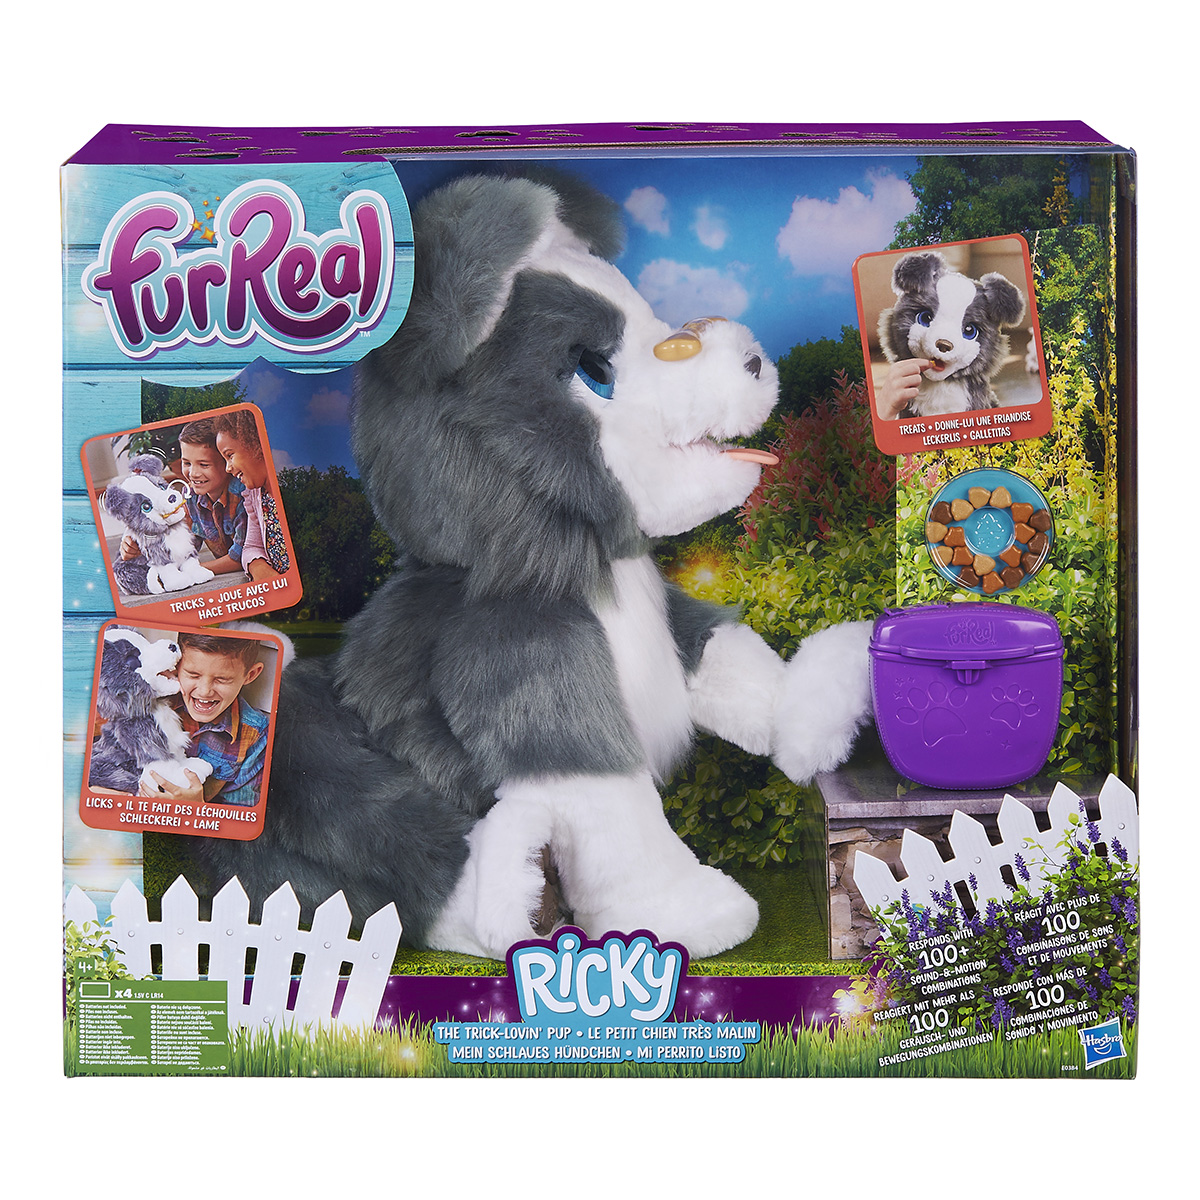 FurReal interaktiv hund - Ricky The Trick-lovin Pup